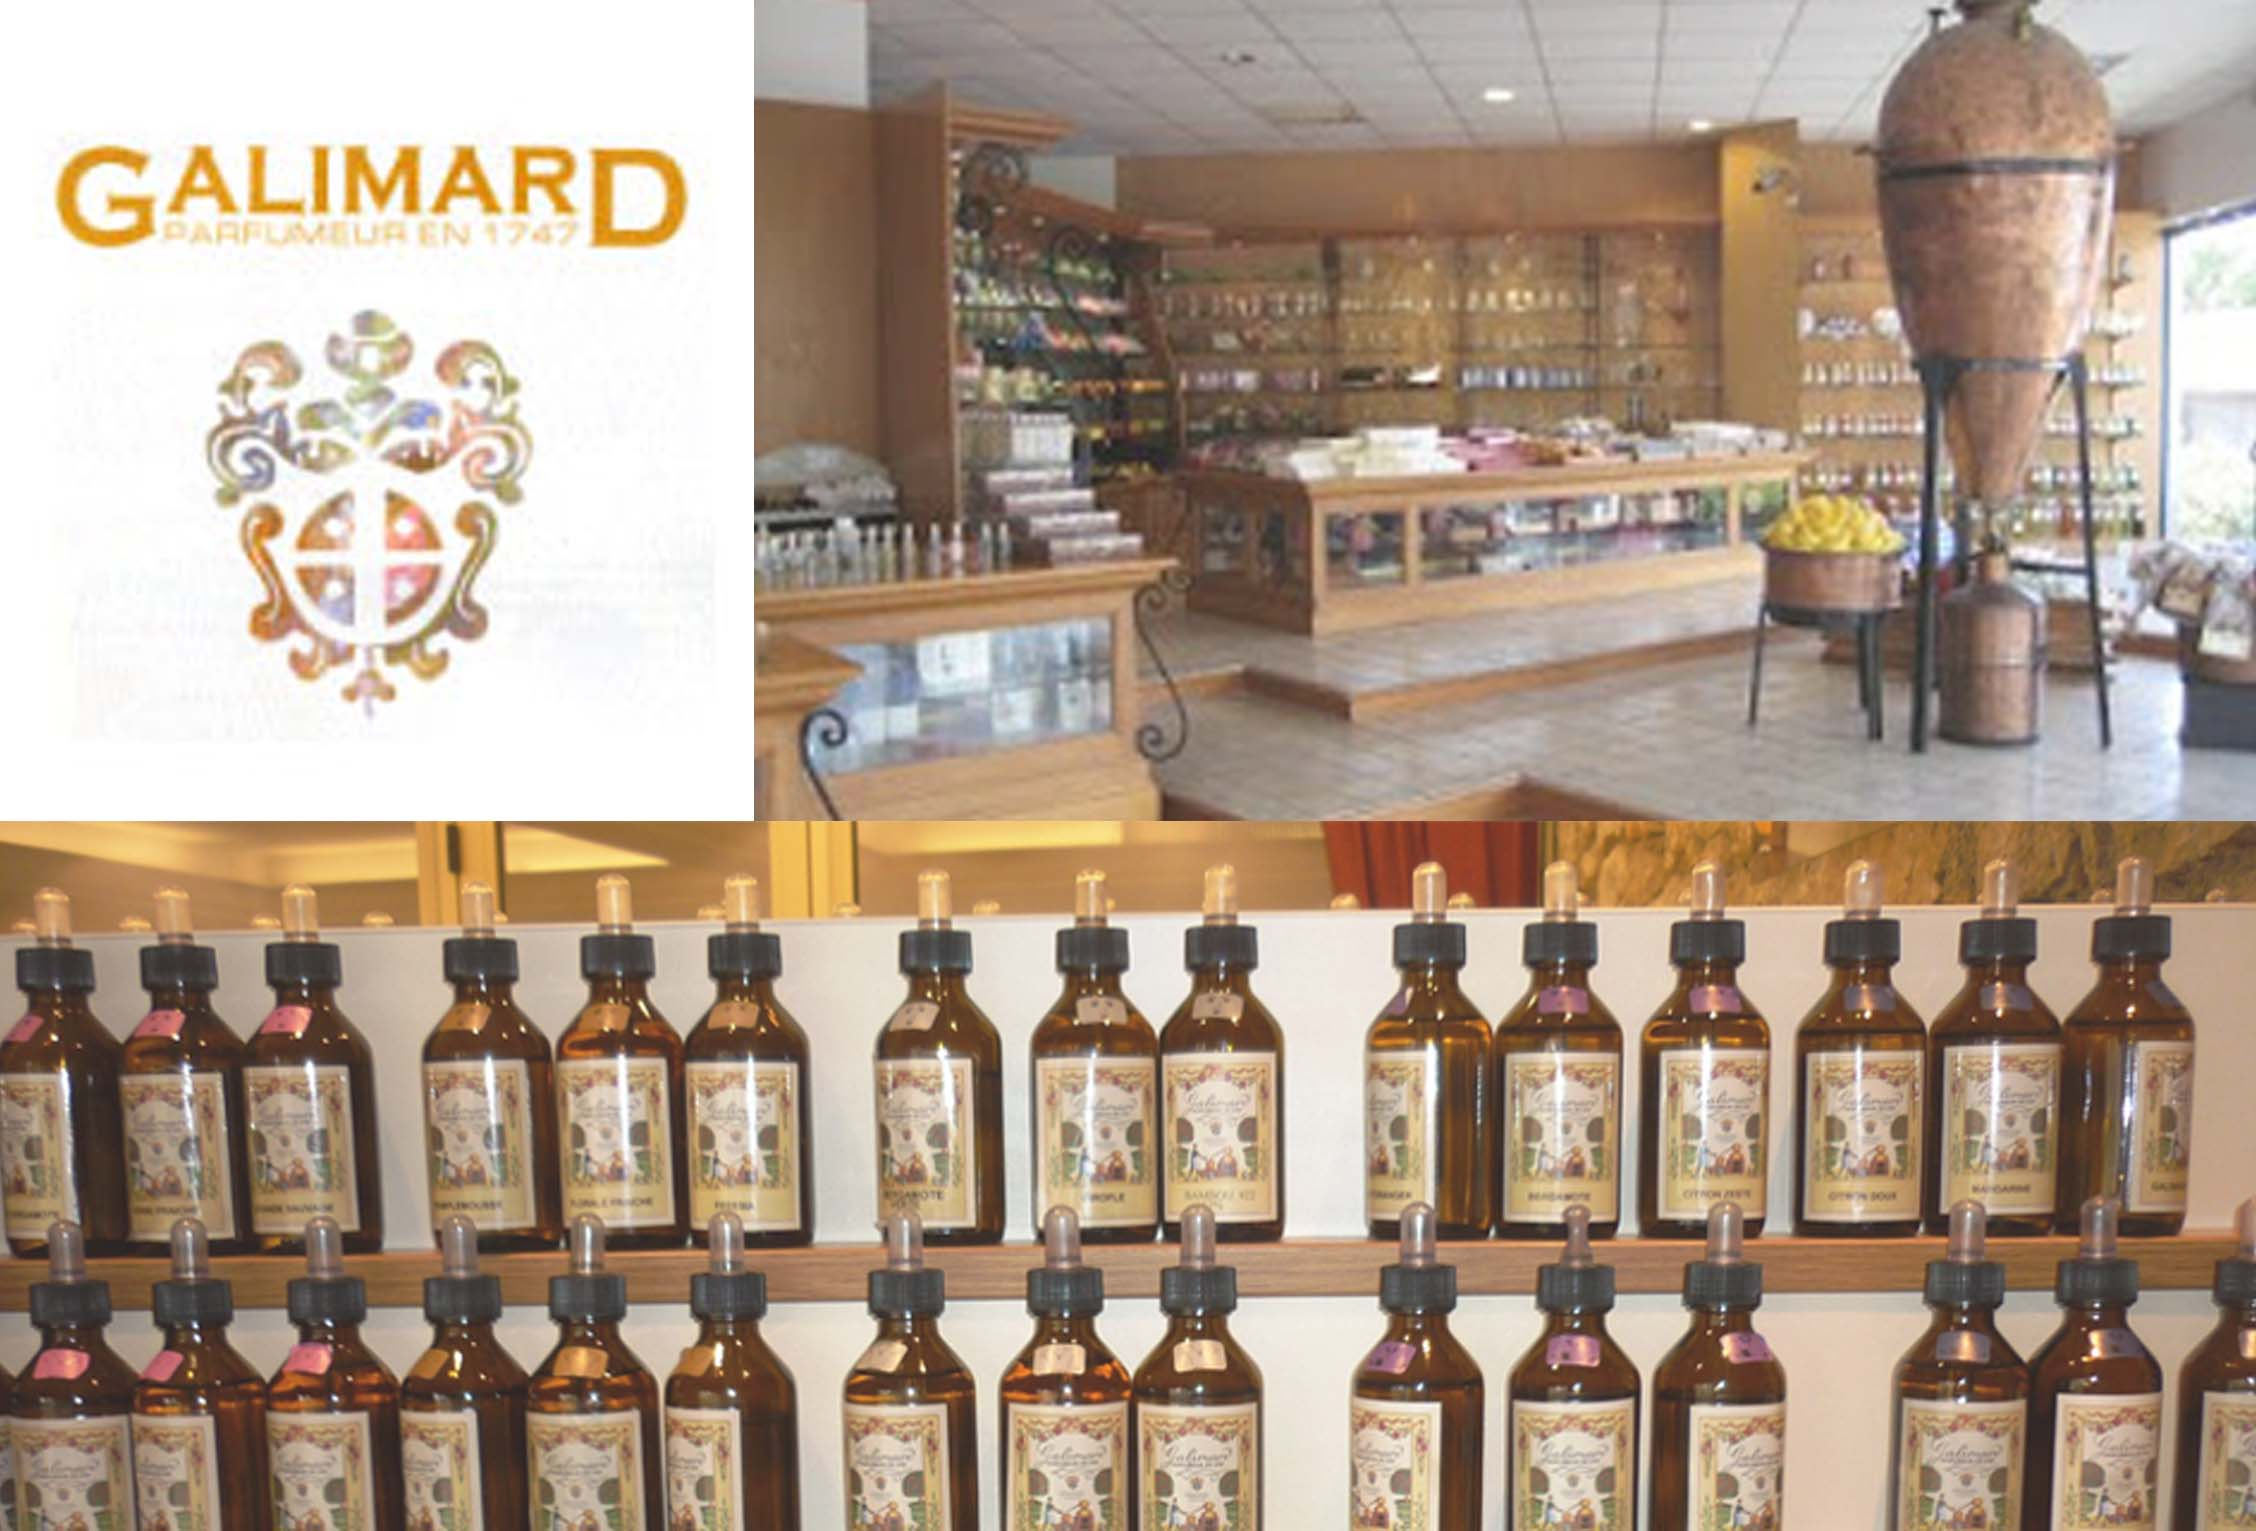 Galimard Perfume Shop